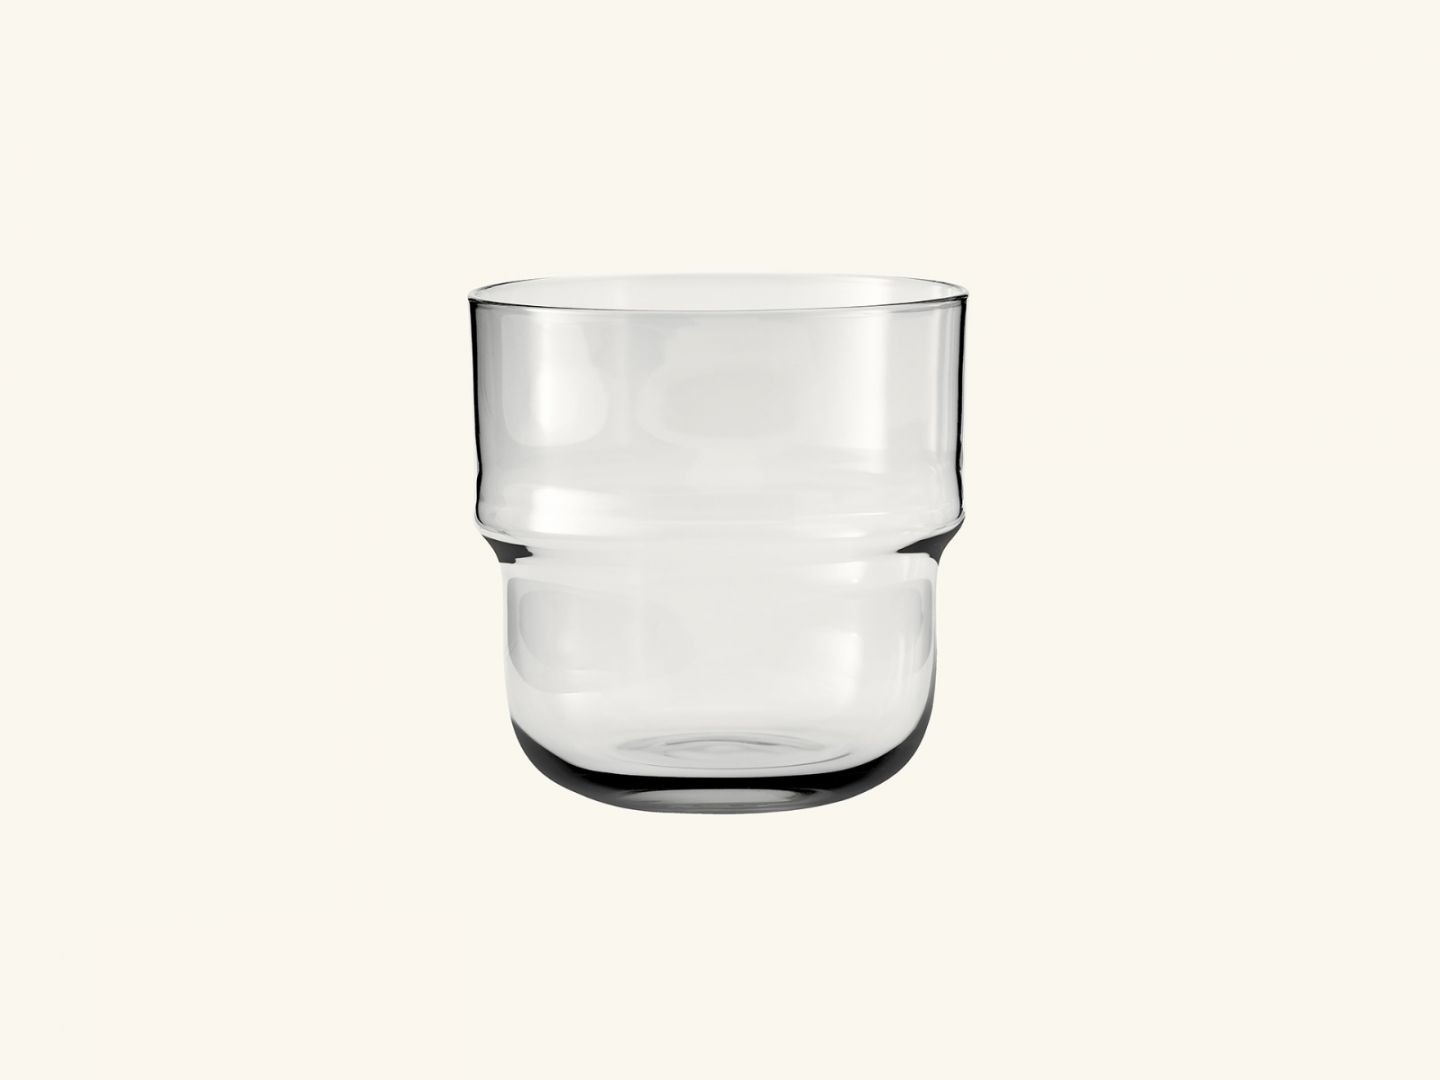 NM& Unda glass Clear (set of 2)